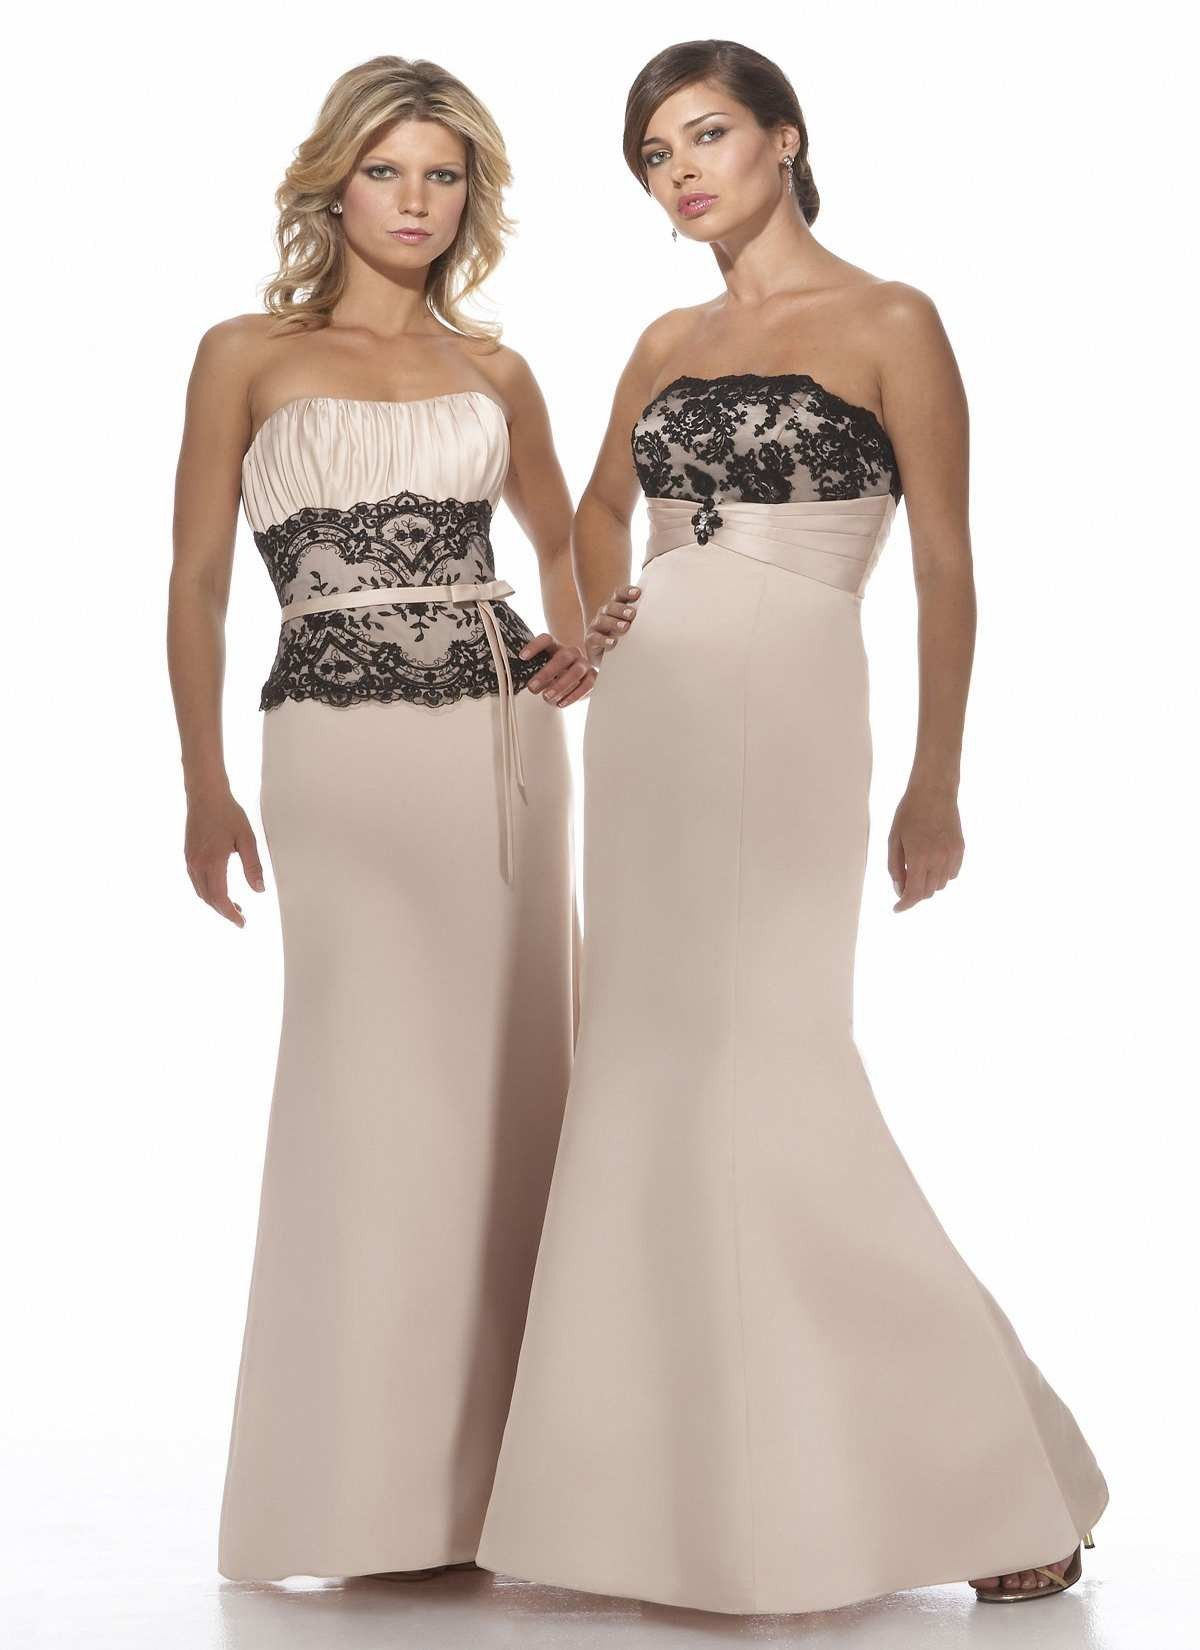 Bridesmaid lace dresses above black and champagne lace bridesmaid lace dresses above black and champagne lace bridesmaid dresses the property ombrellifo Choice Image